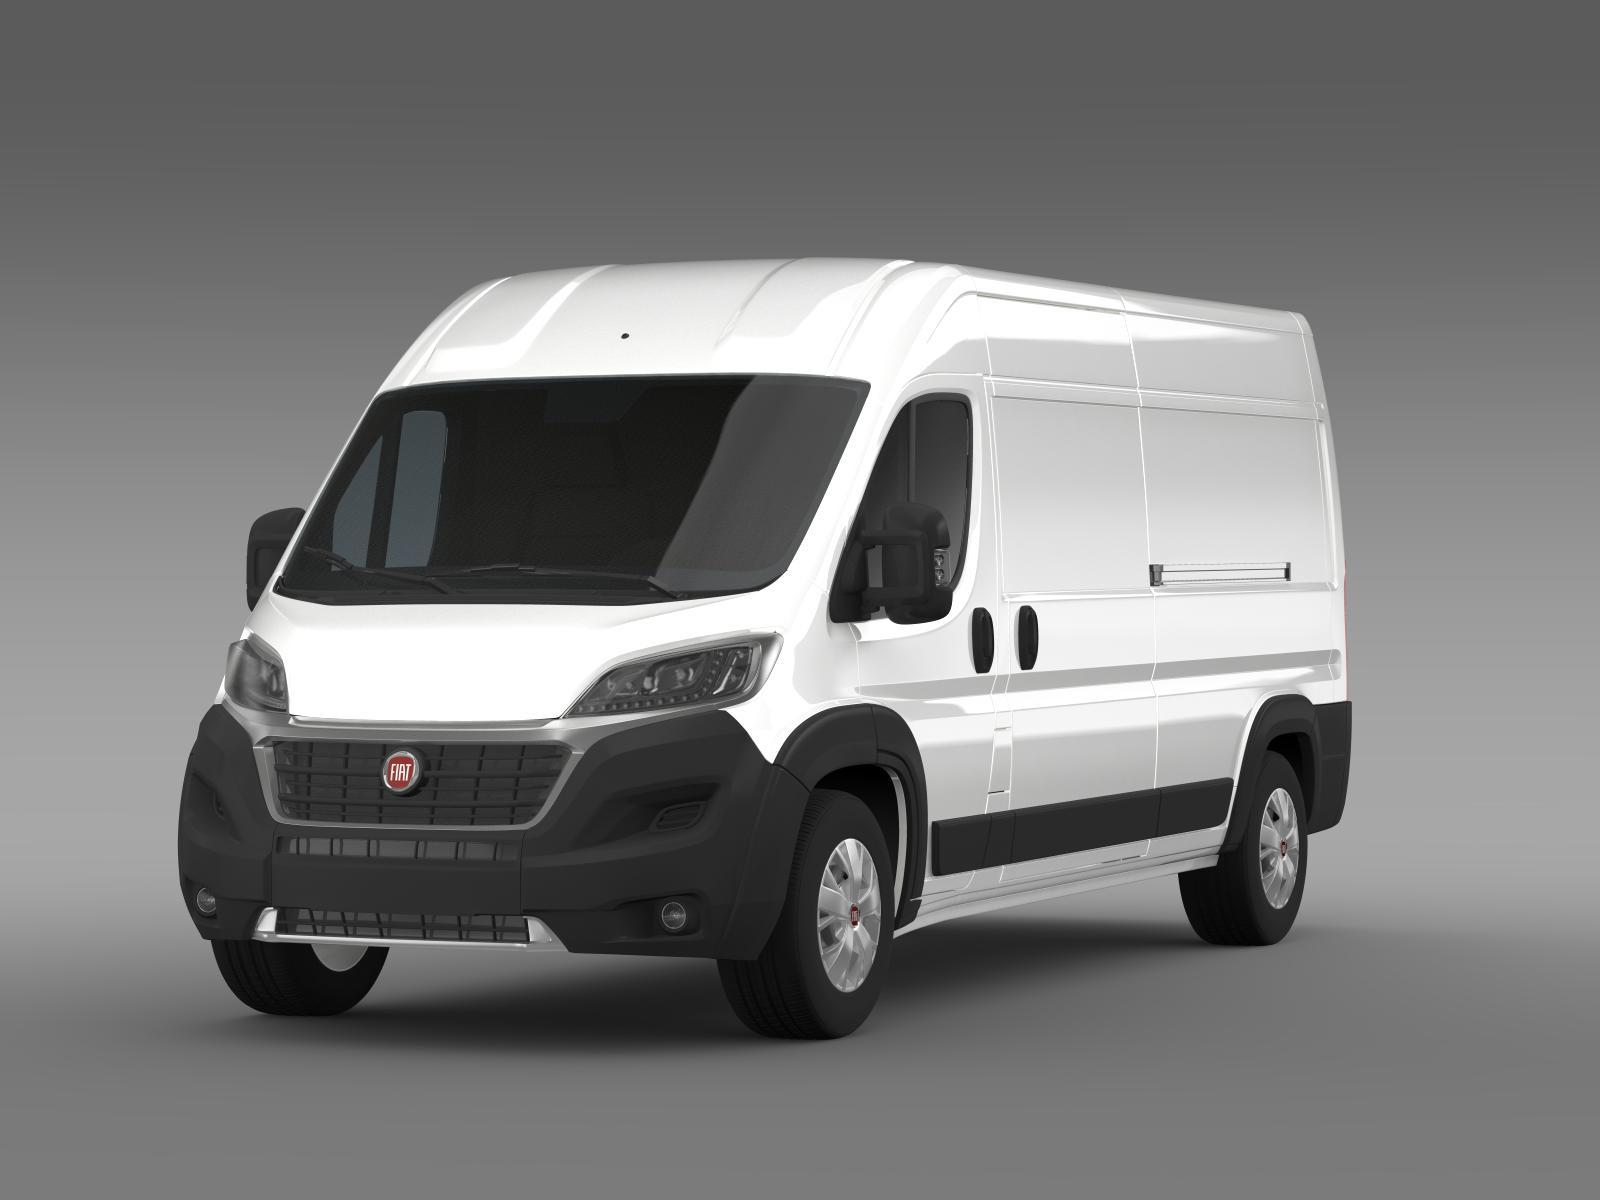 fiat ducato maxi van l3h2 2015 by creator 3d 3docean. Black Bedroom Furniture Sets. Home Design Ideas